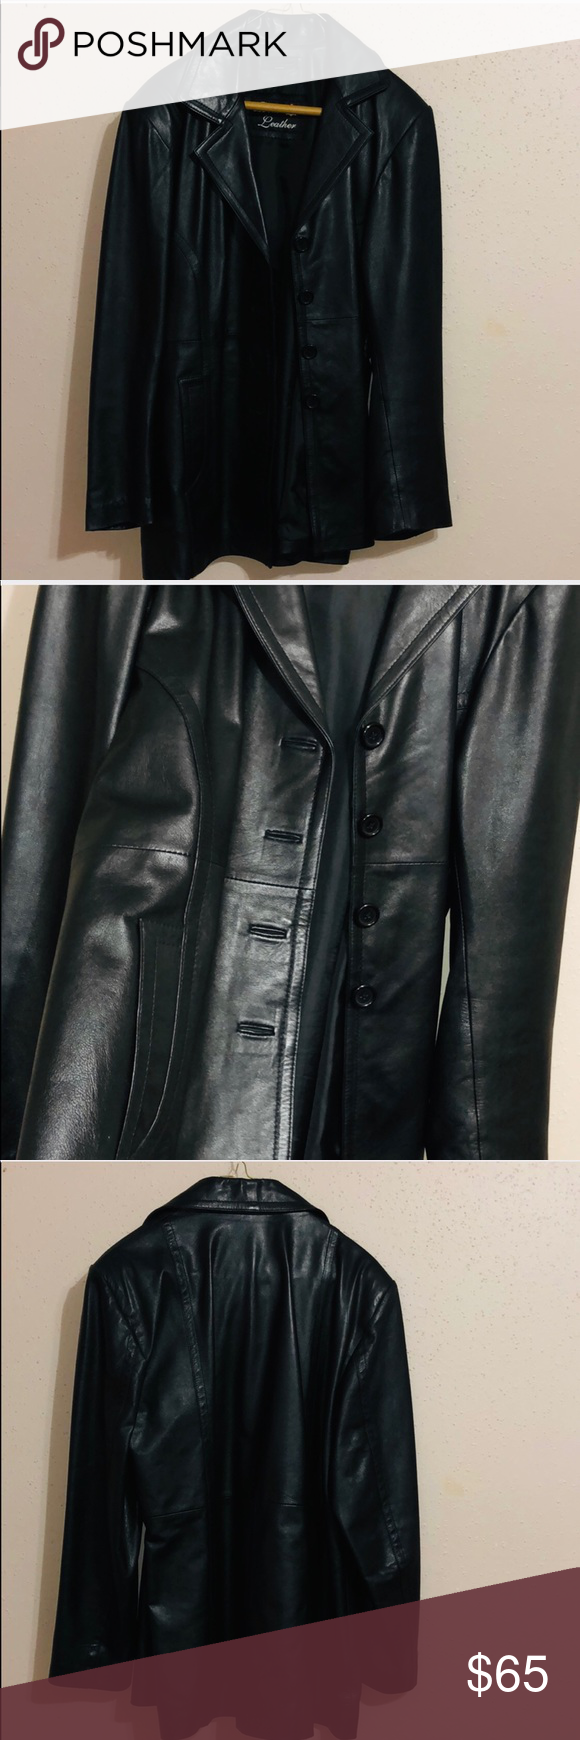 REAL LEATHER Women's Jacket Jackets, Leather women